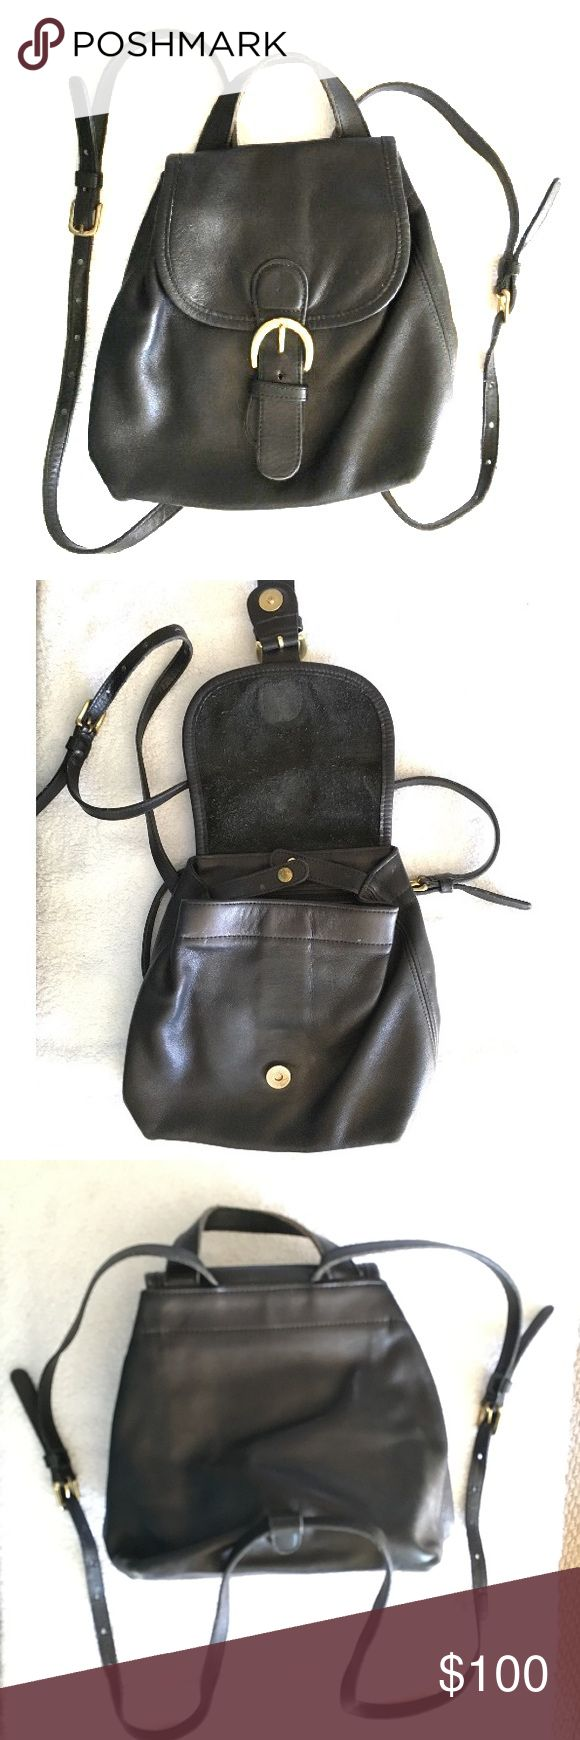 Coach Mini Black Leather Backpack Bag USA Adorable Vintage Coach Mini Black Leather Backpack! Made in USA!  Great gently used vintage condition. Leather is amazingly smooth and supple. Just a few faint scratches - not really noticeable. Coach Bags Backpacks